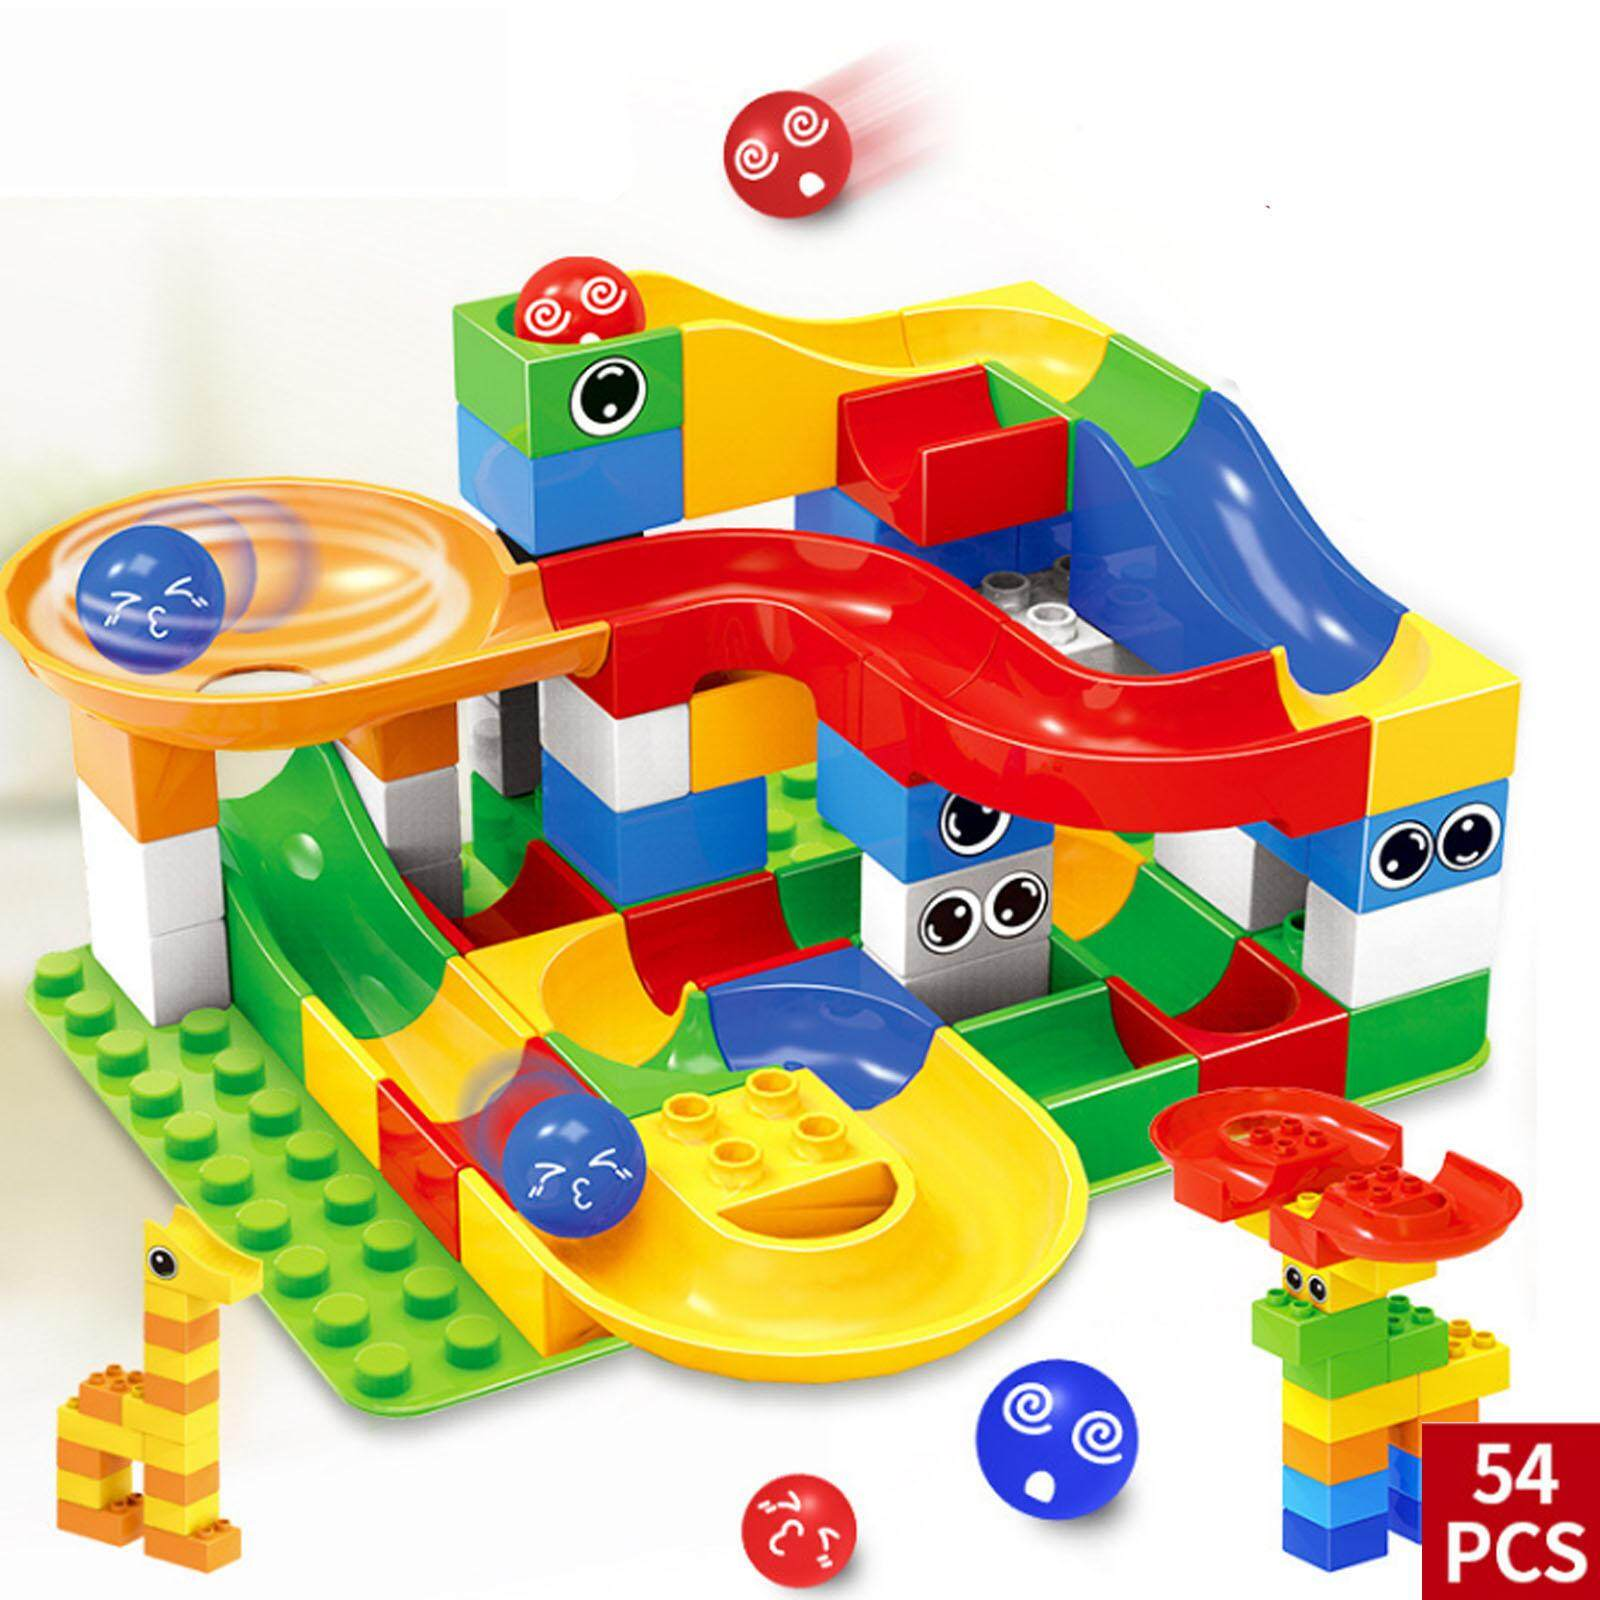 Nava Diy Children Creative 54 Pcs Colorful Large Slide Marble Puzzle Kids Toys By Nava